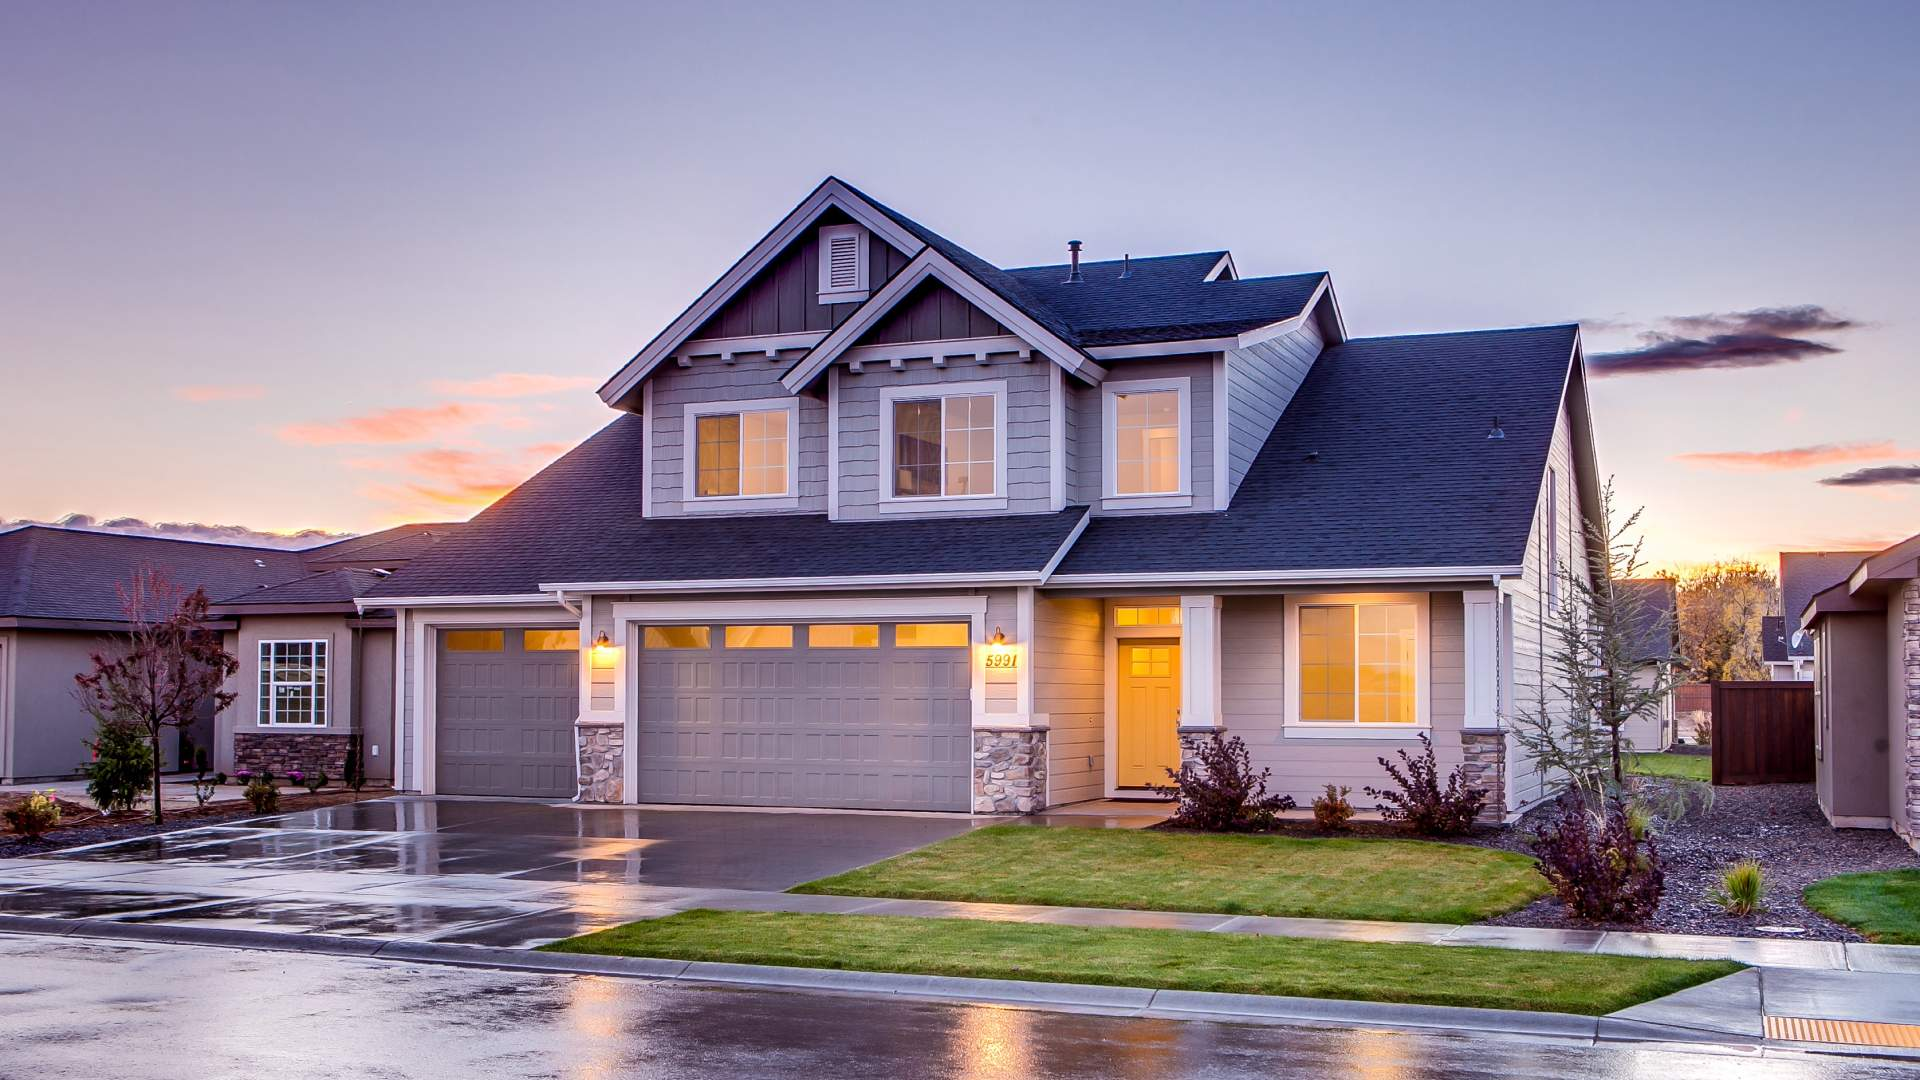 Before You Make A 20 Mortgage Down Payment Read This